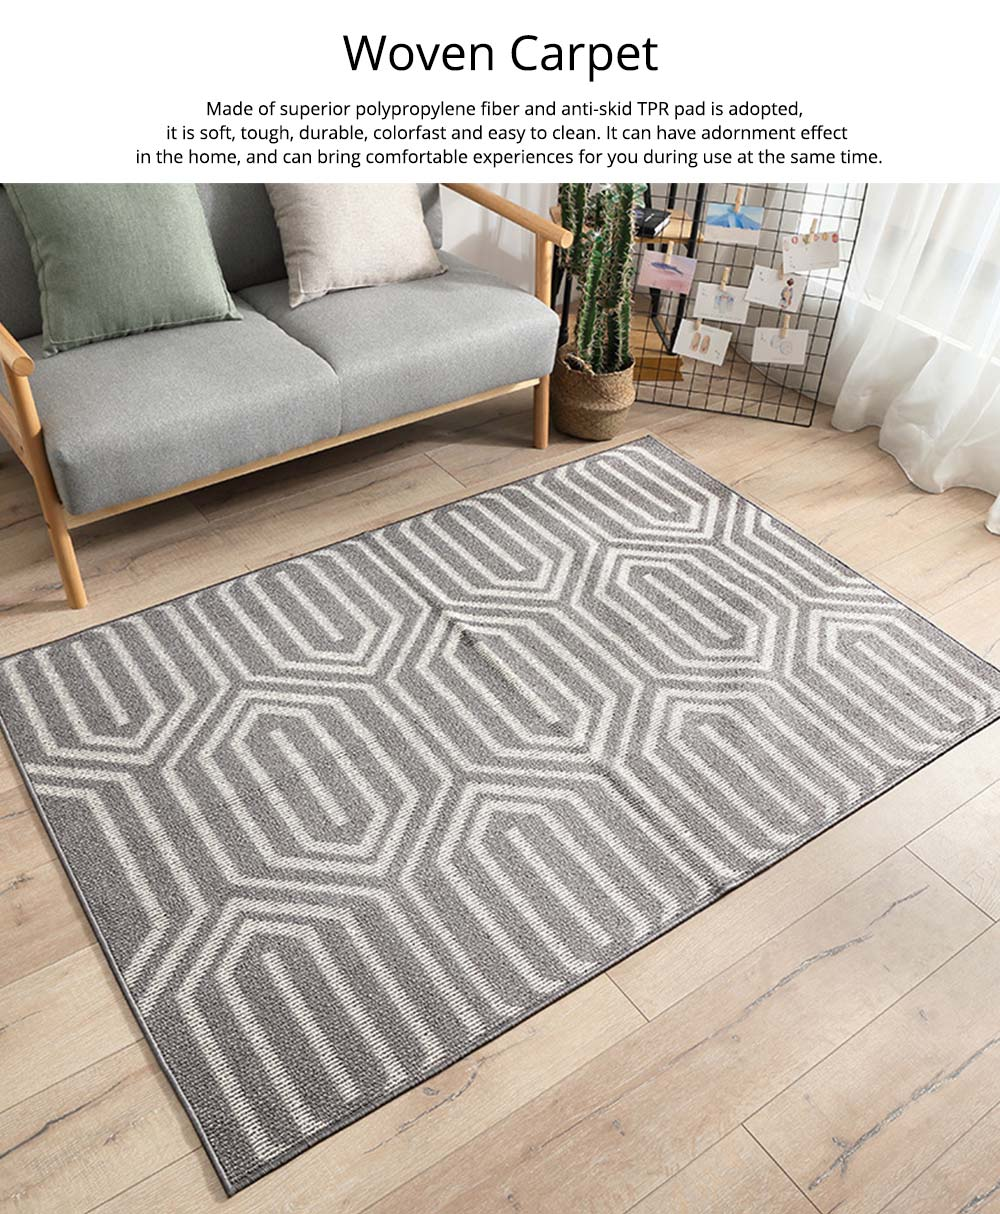 Double Layer Woven Carpet, Modern Style Non-slip Rugs for Living Room, Bedroom 0